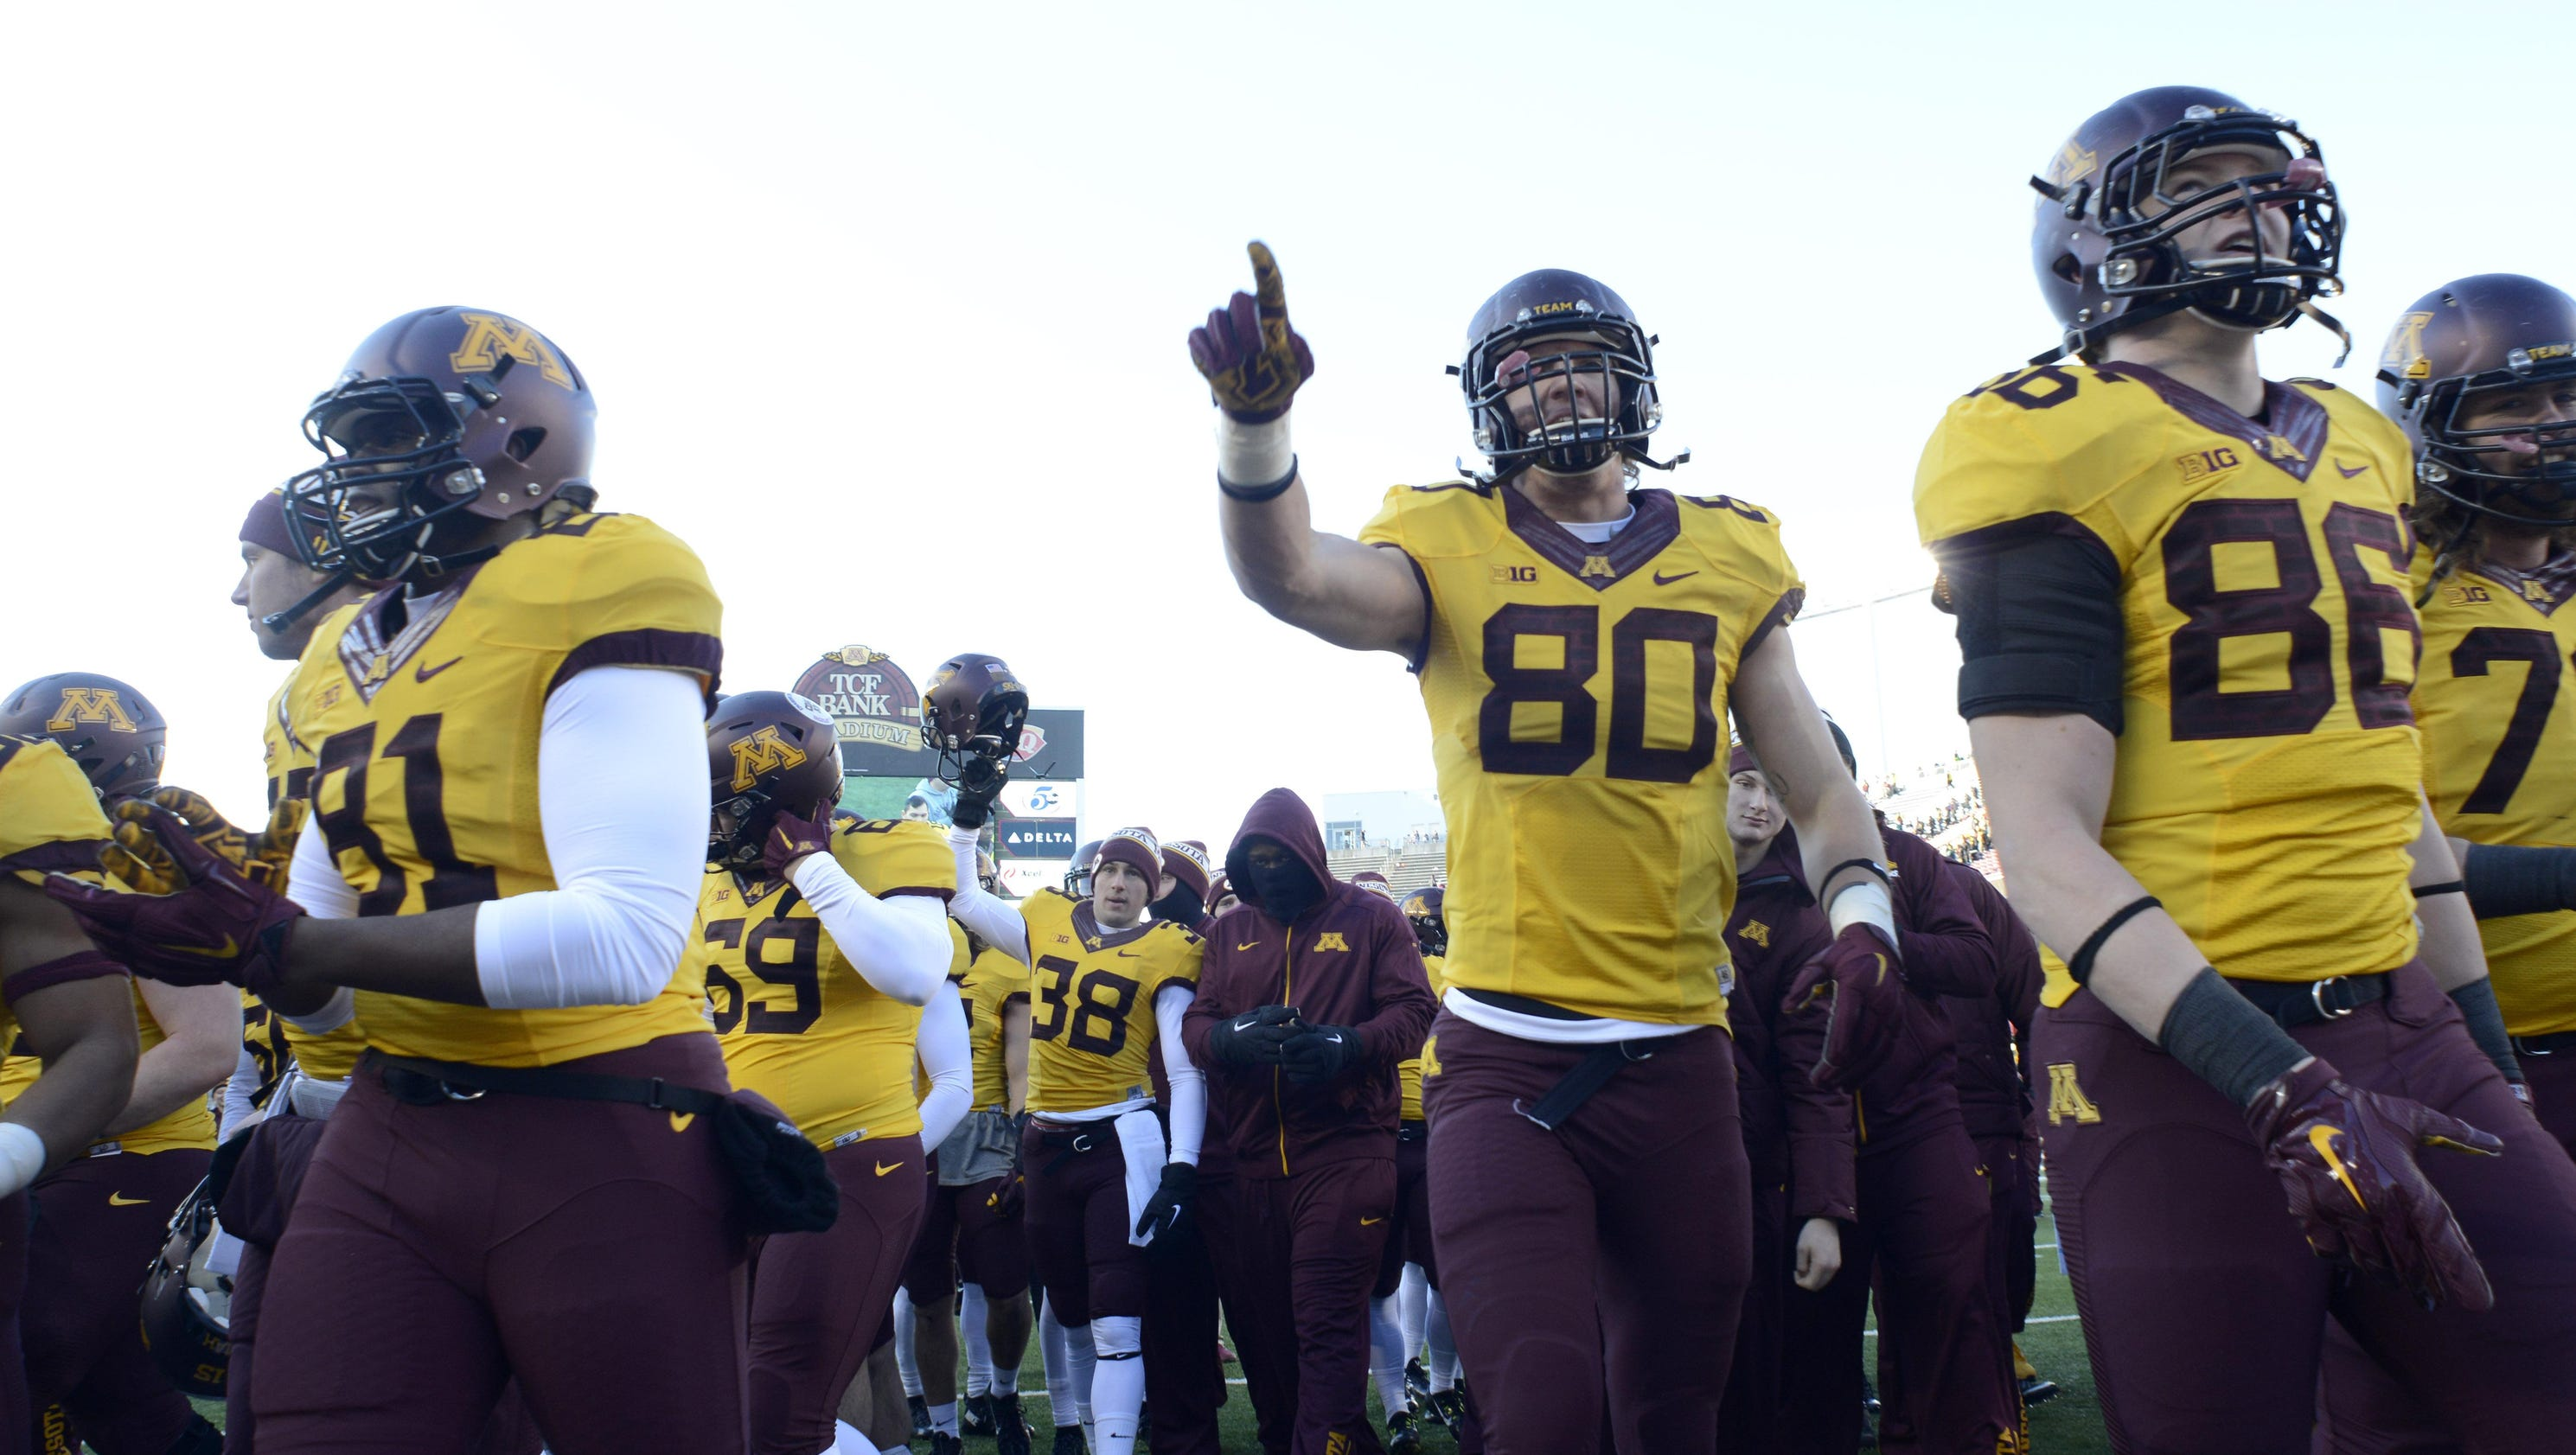 gophers gob top 5 - photo #16